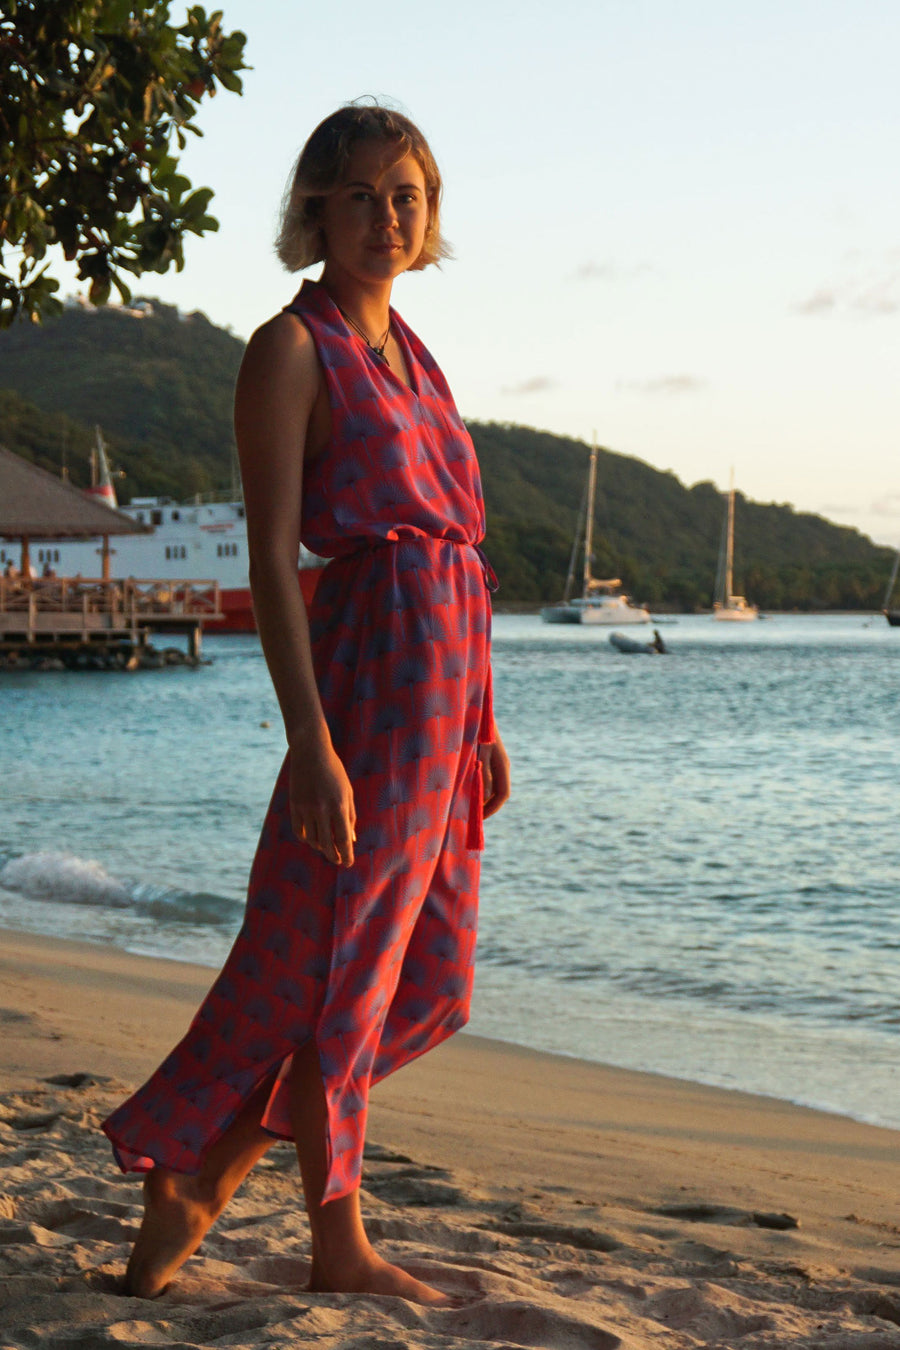 Lotty B 3/4 Halter Dress in Silk Crepe-de-Chine: SINGLE PALM REPEAT - PINK / BLUE vacation wear by Lotty B Mustique